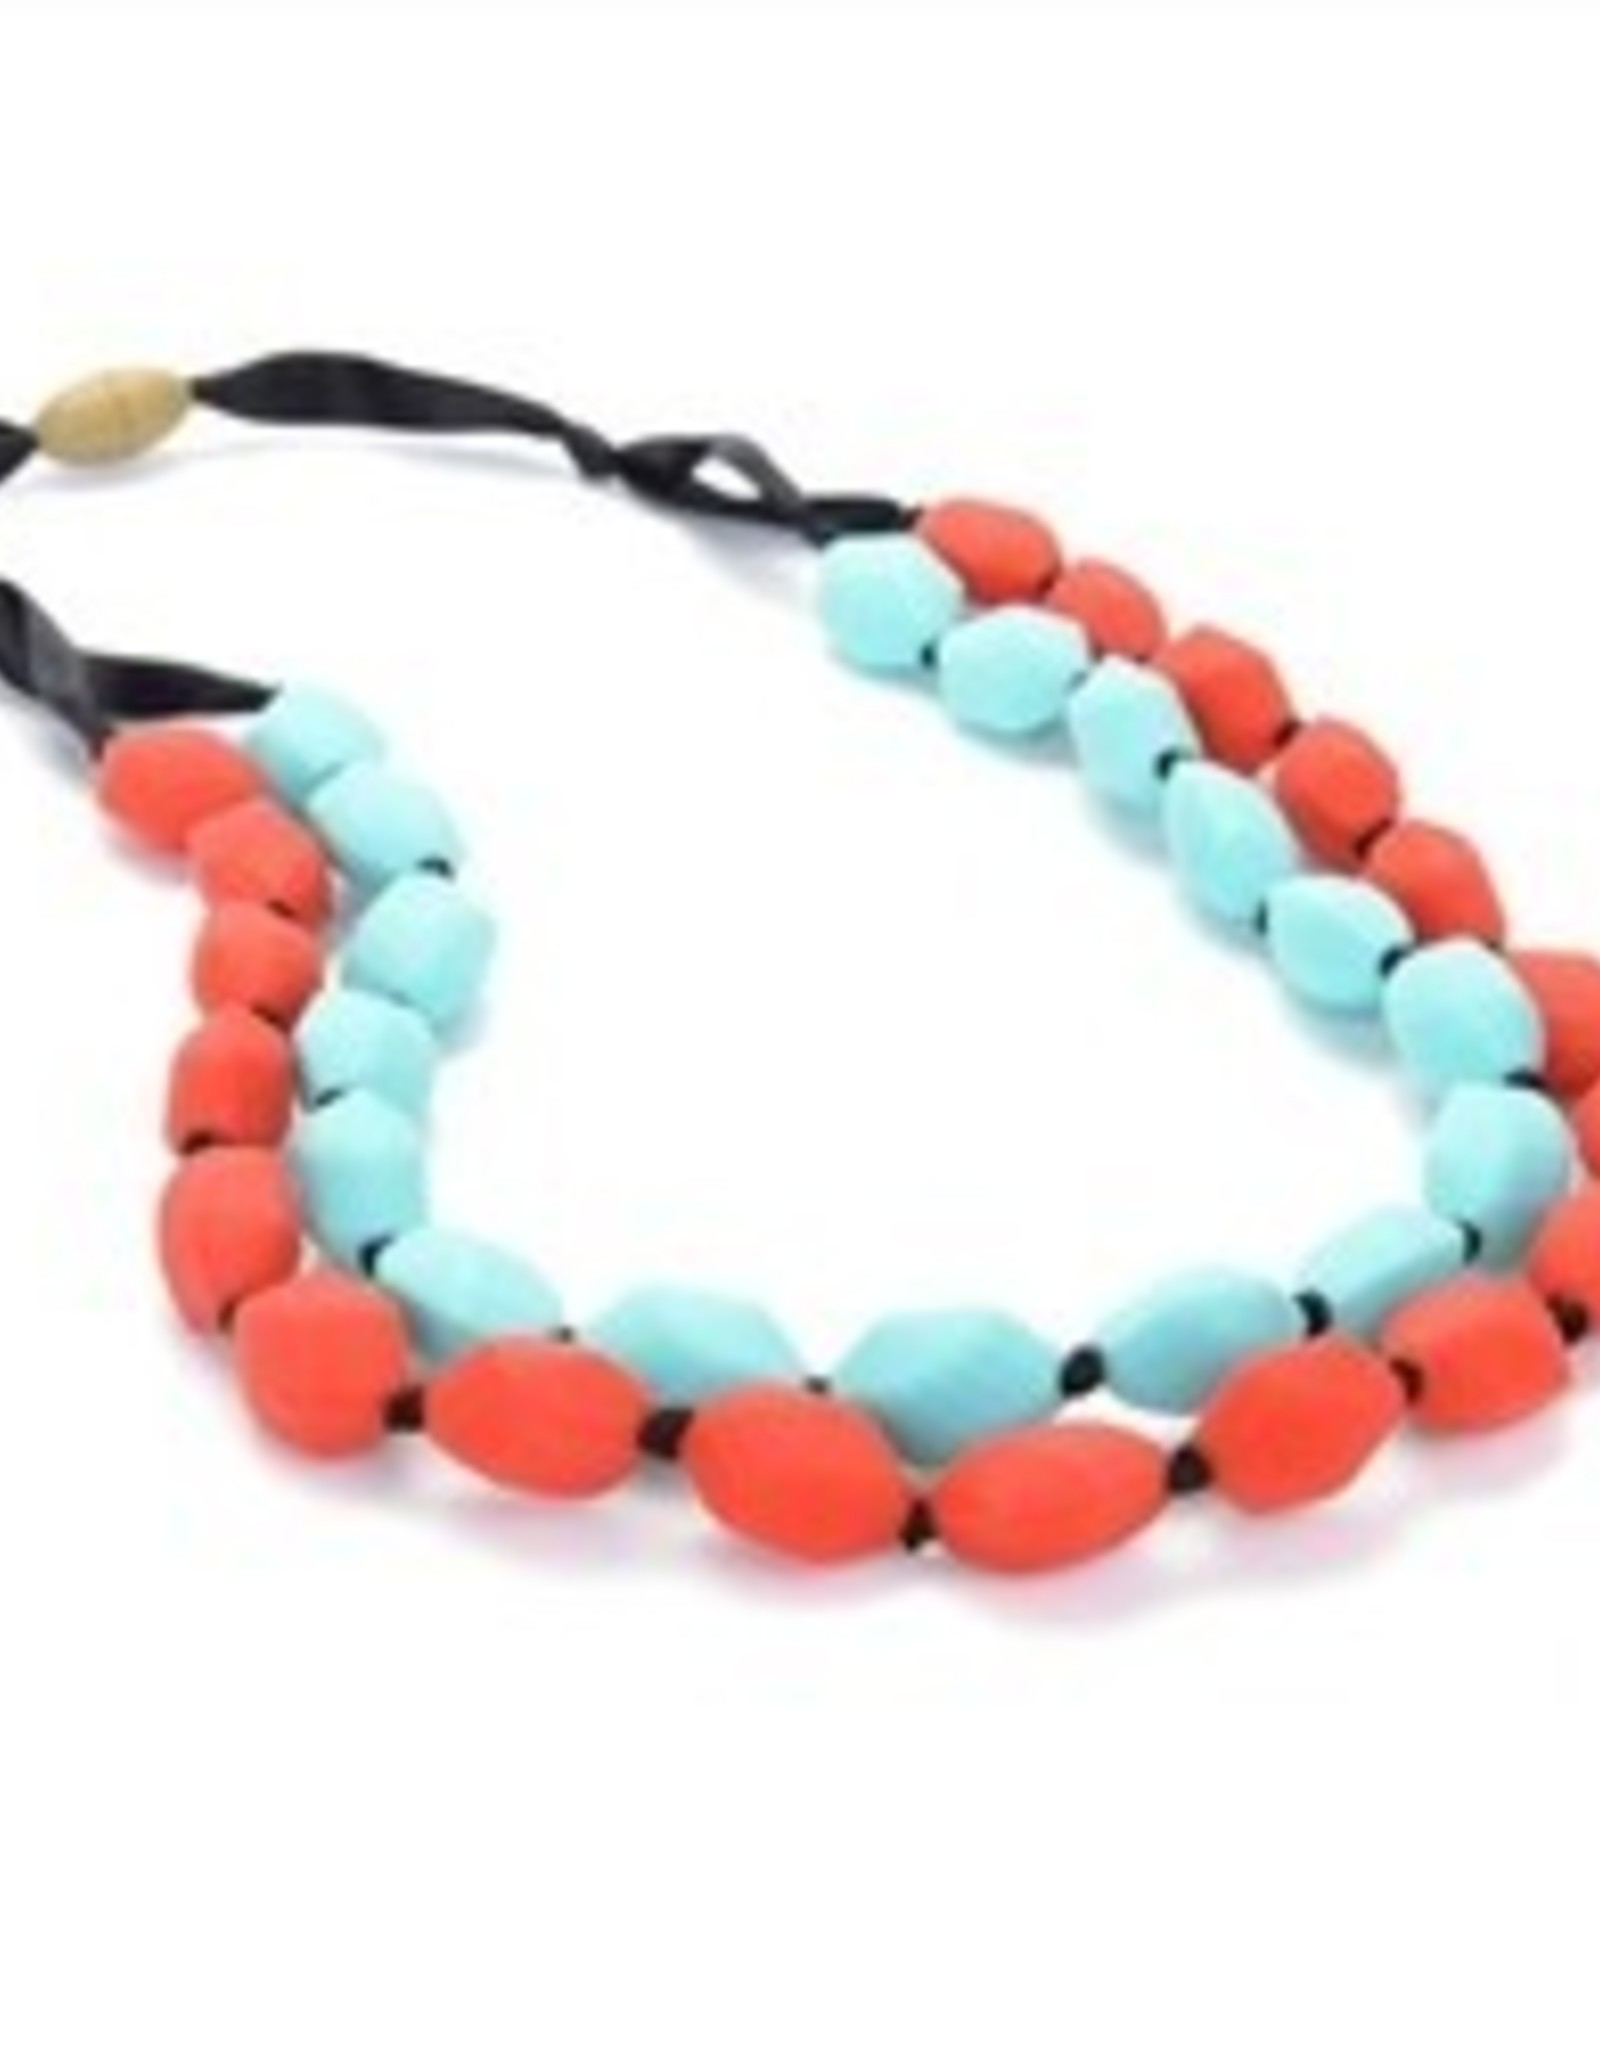 Chewbeads The Astor Necklace